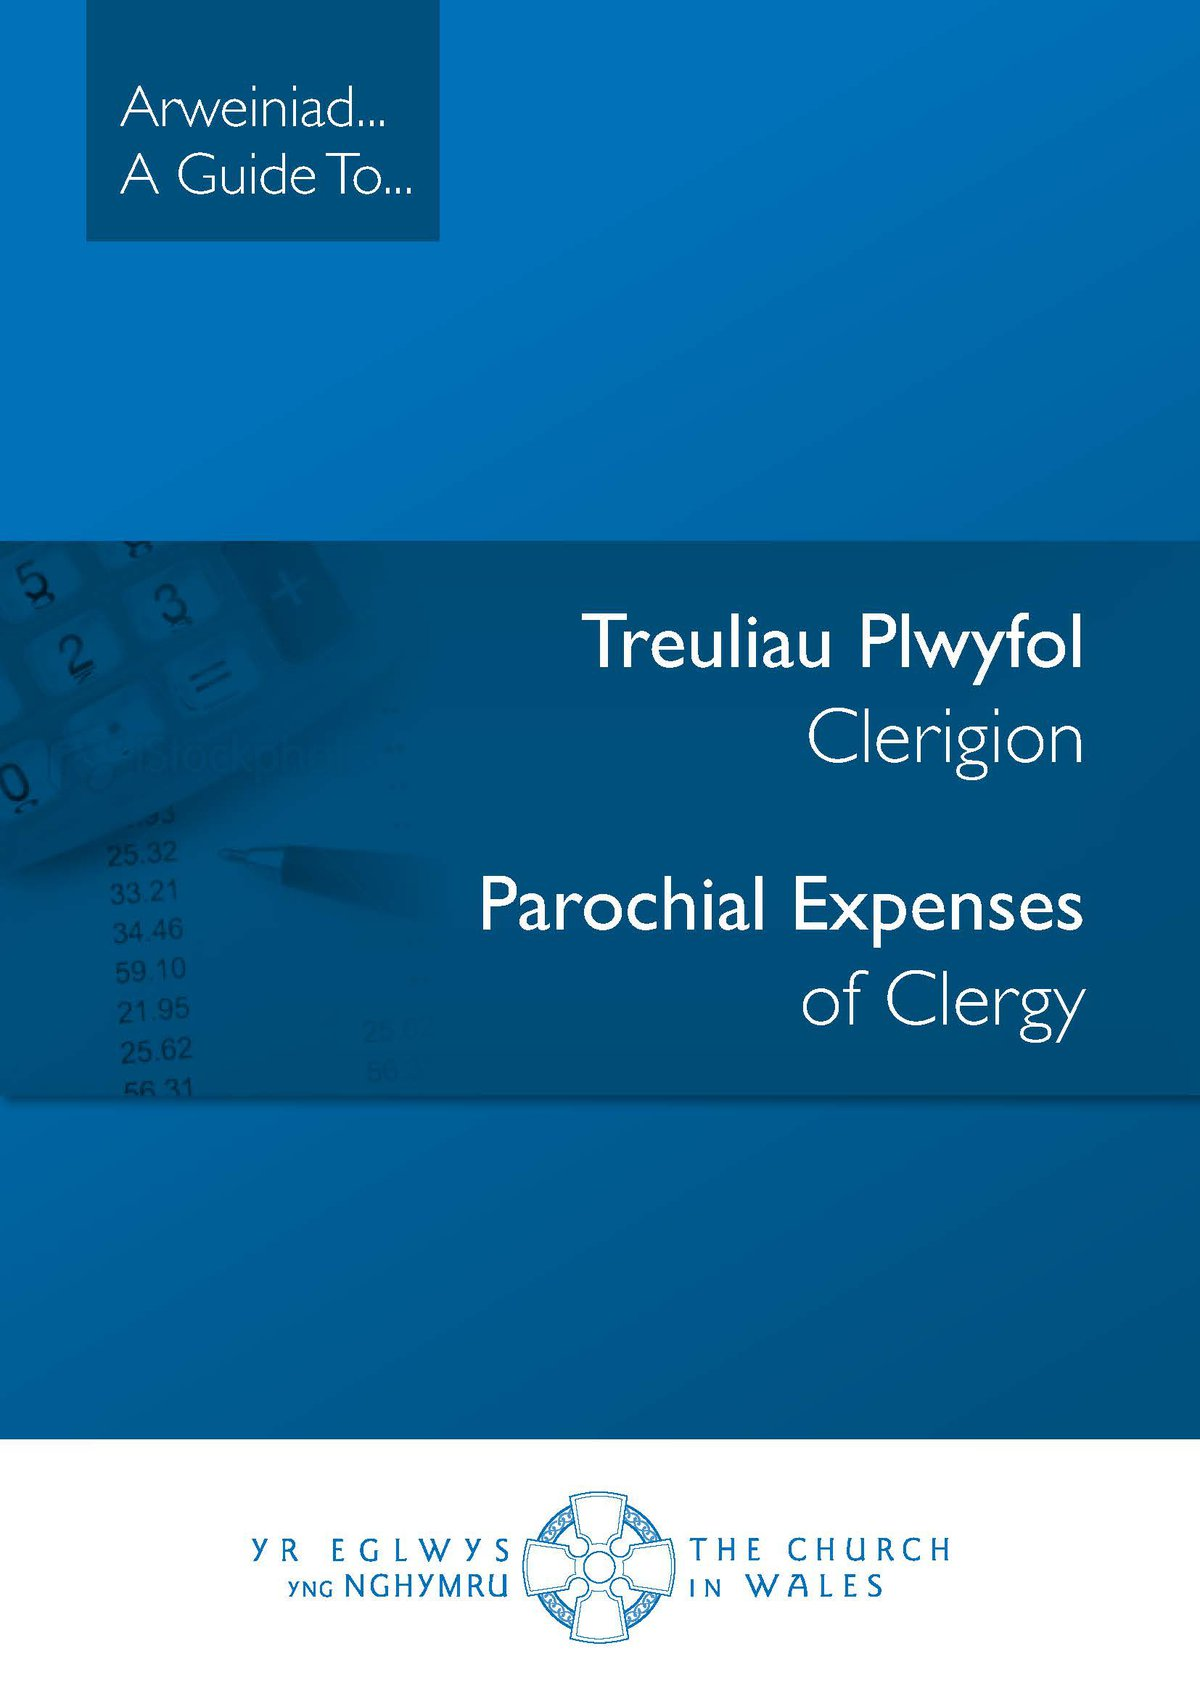 Treuliau Plwyfol Clerigion - Parochial Expenses of Clergy